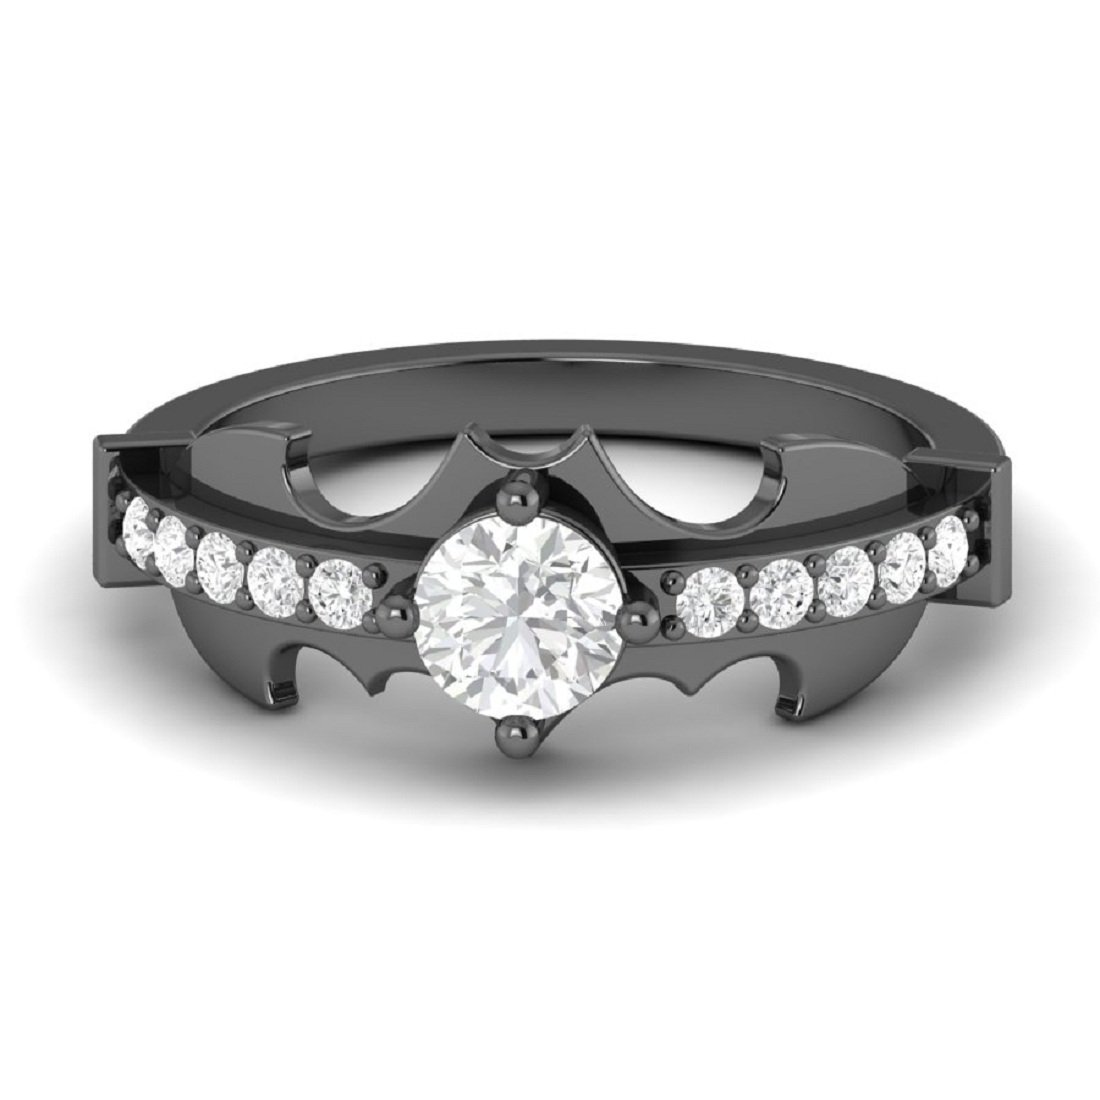 New 3.15ct White Diamond Round Cut Batman Engagement Wedding Ring in Full Black 925 Sterling Silver (5.5)